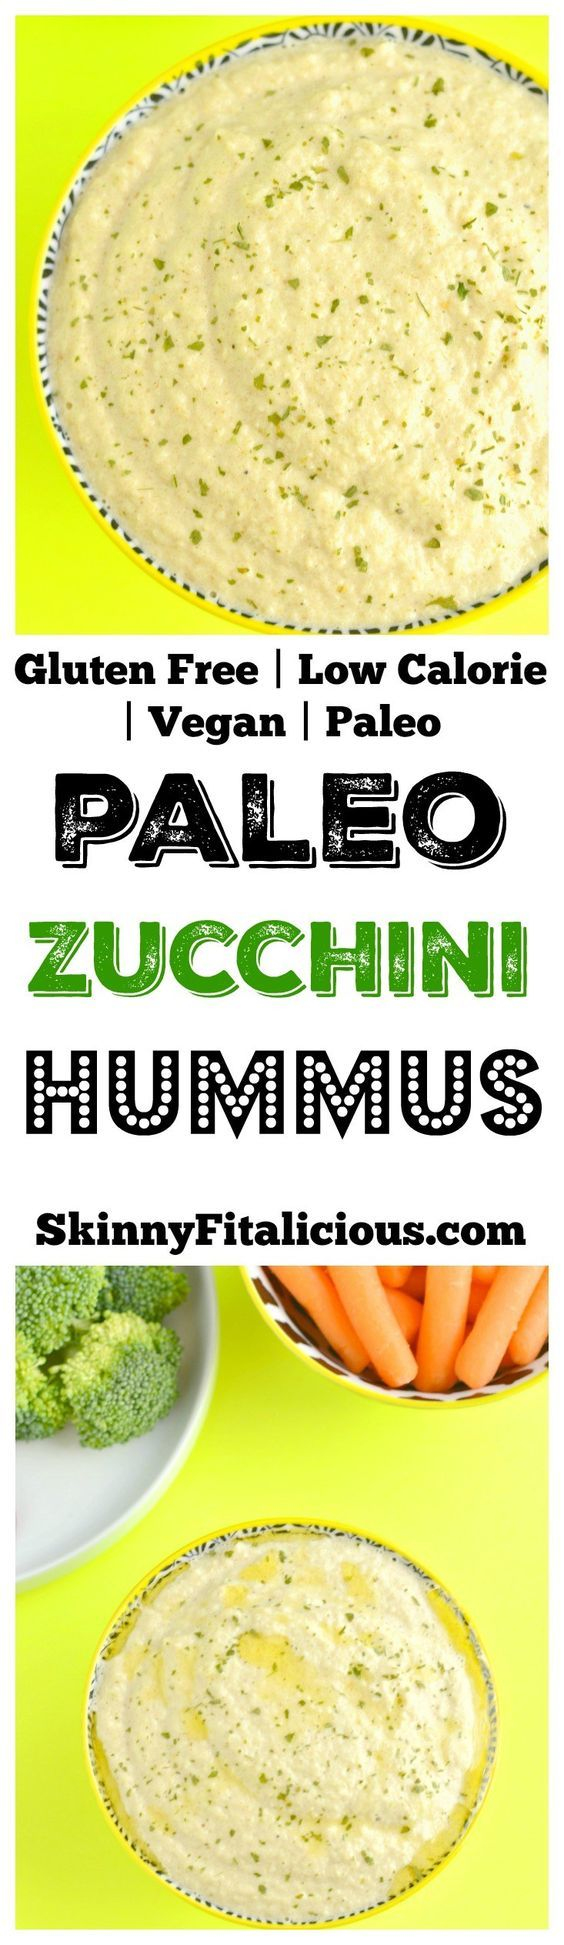 This Paleo Zucchini Hummus is flavorful, light and refreshing! Perfect to bring to a summer BBQ or to munch on all summer long. Paleo + Vegan + Gluten Free + Low Calorie